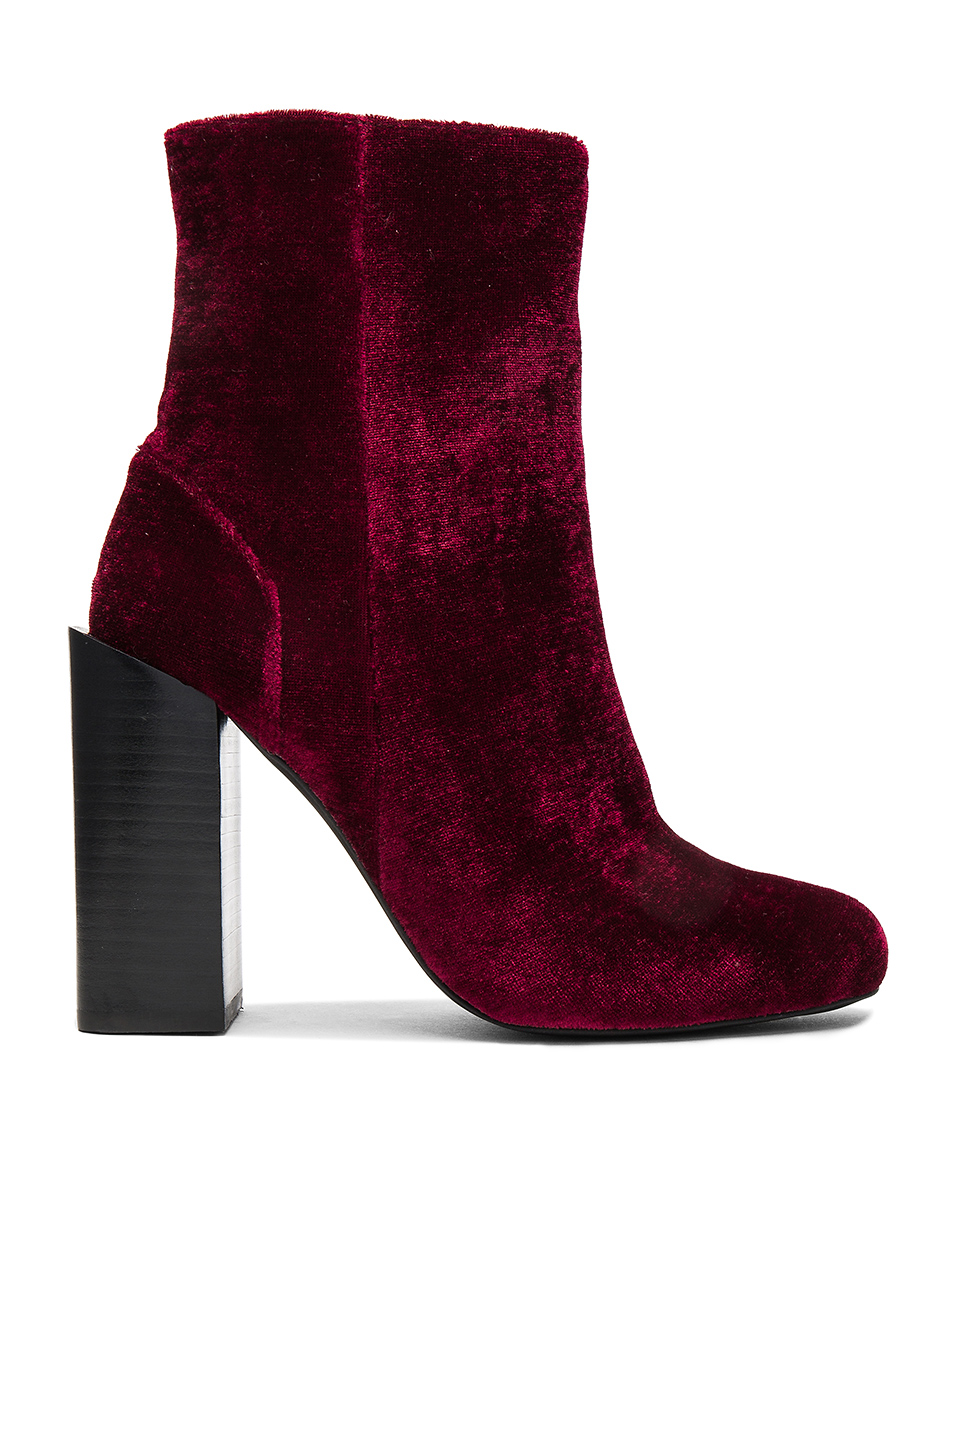 JEFFREY CAMPBELL DARK RED 'STRATFORD' BOOTIES